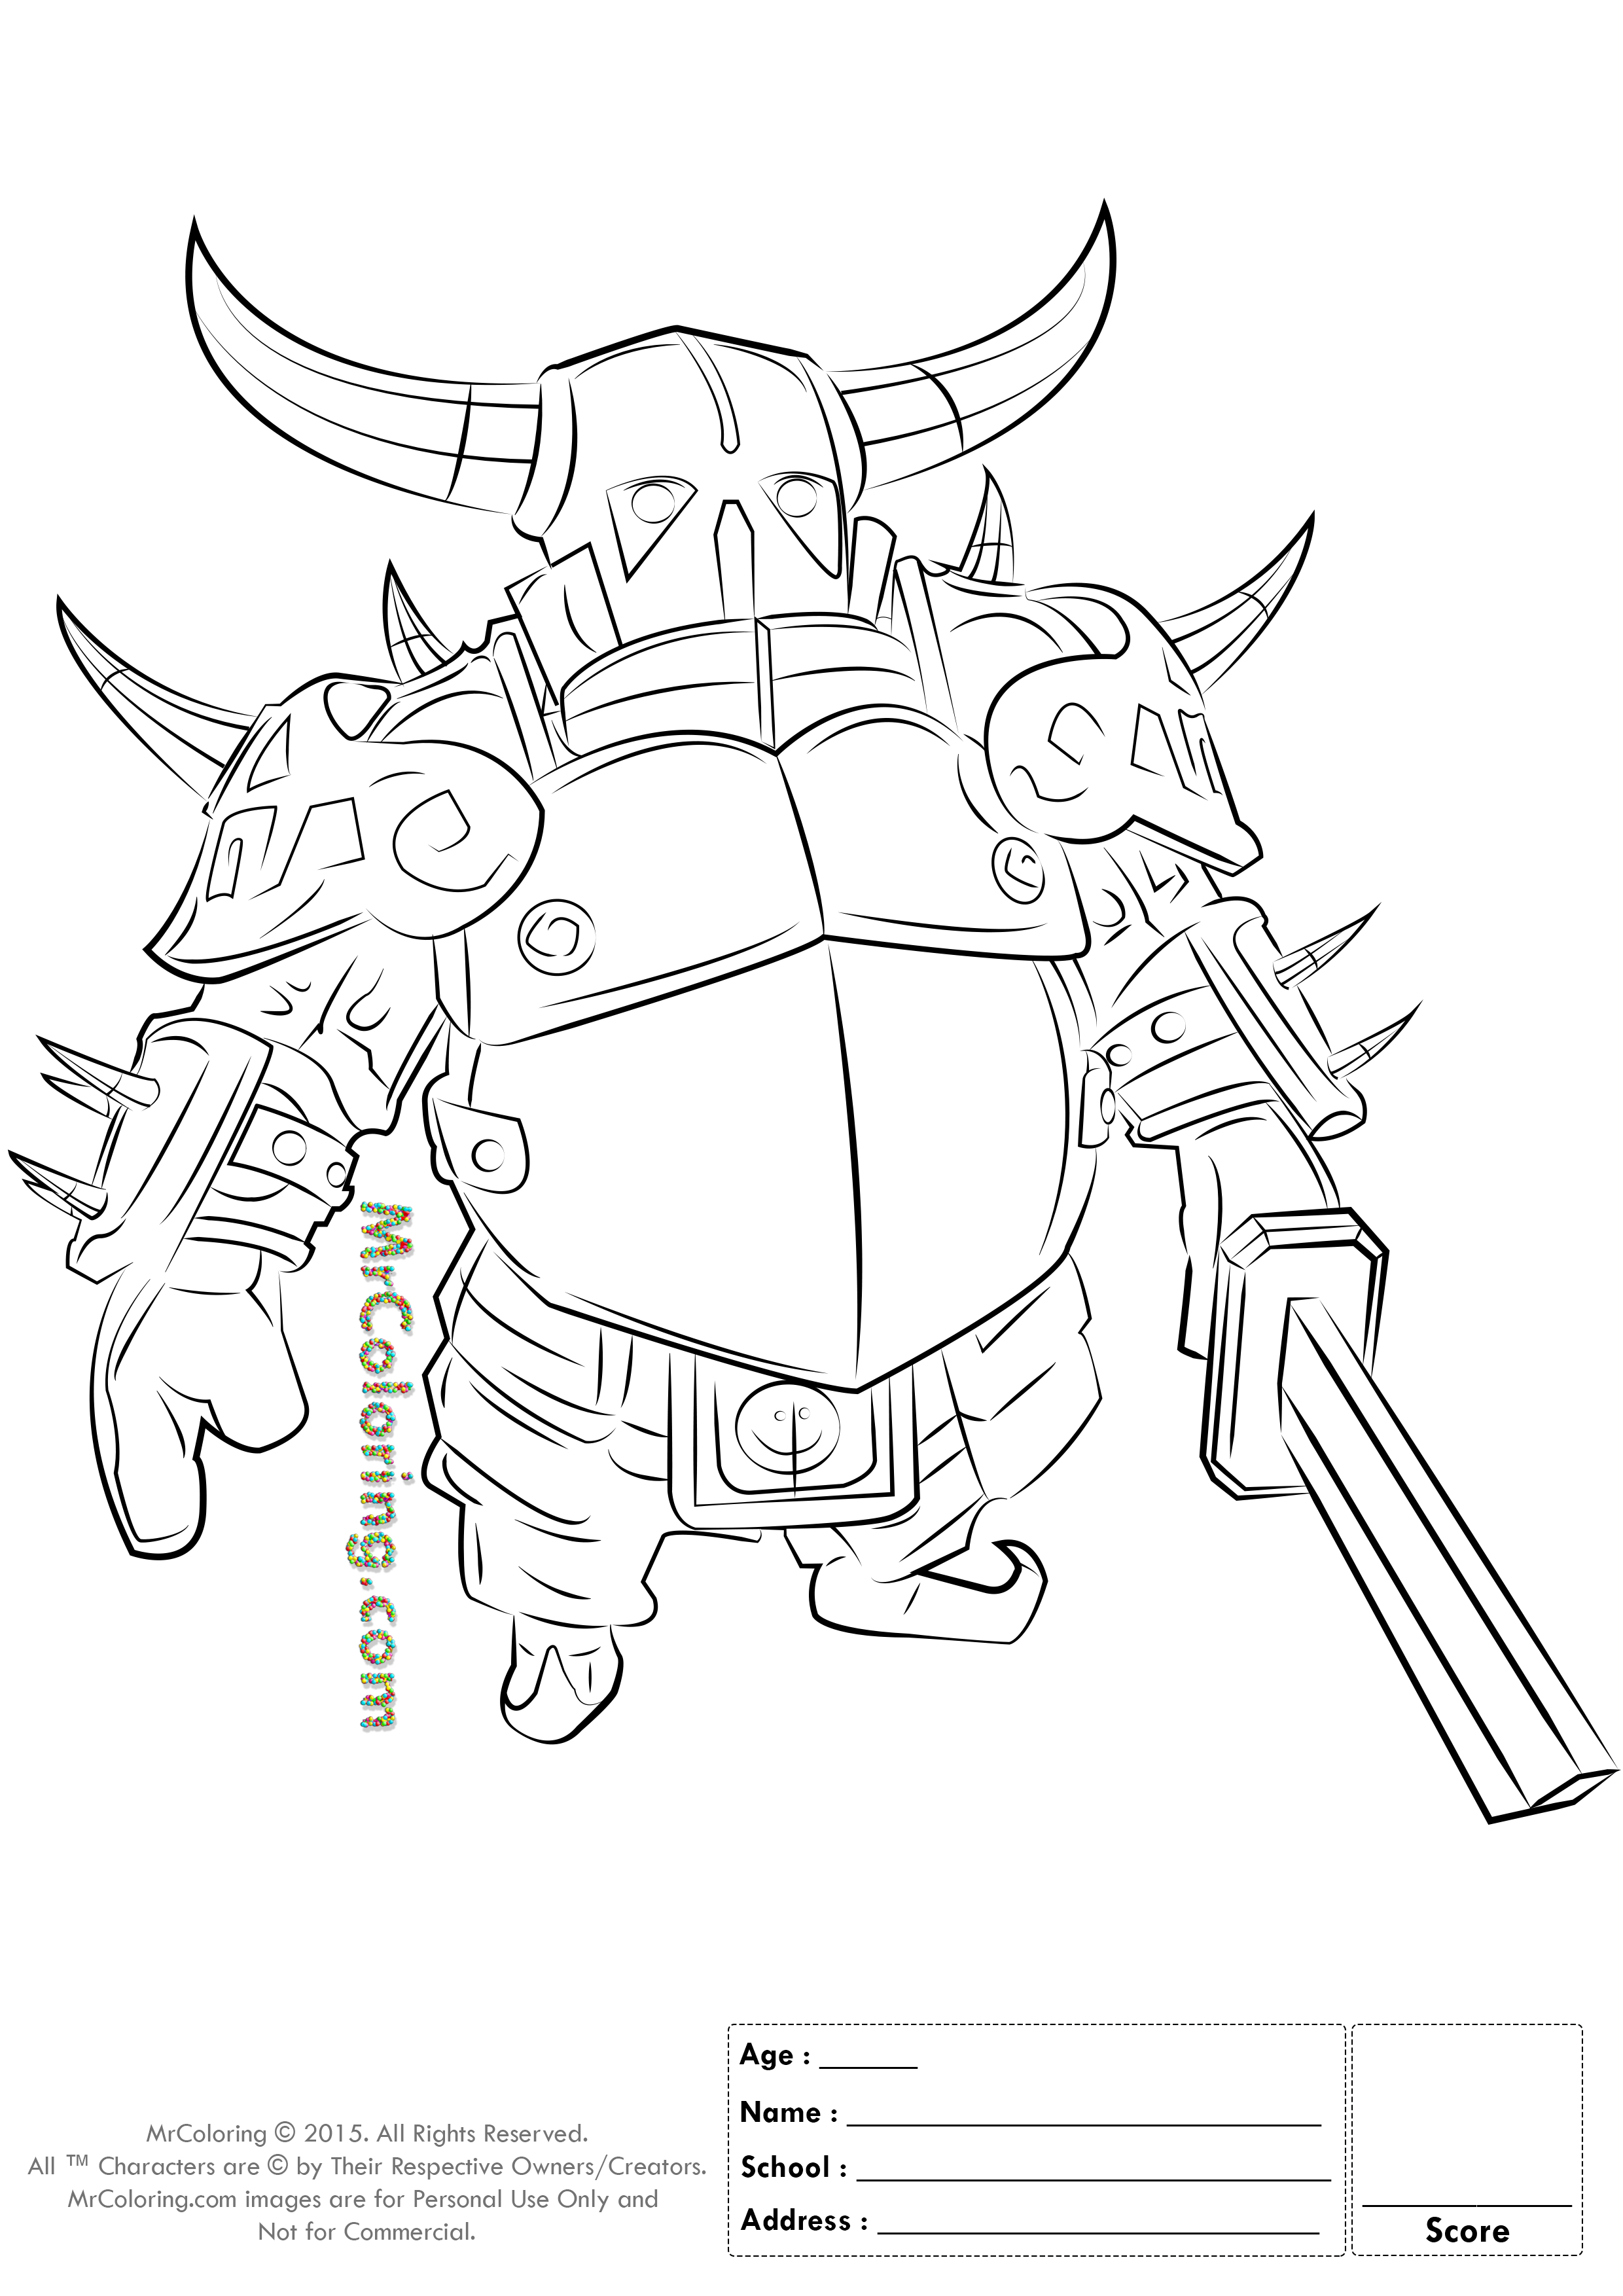 clash of clans coloring pages - free printable clash of clans pekka knight coloring pages